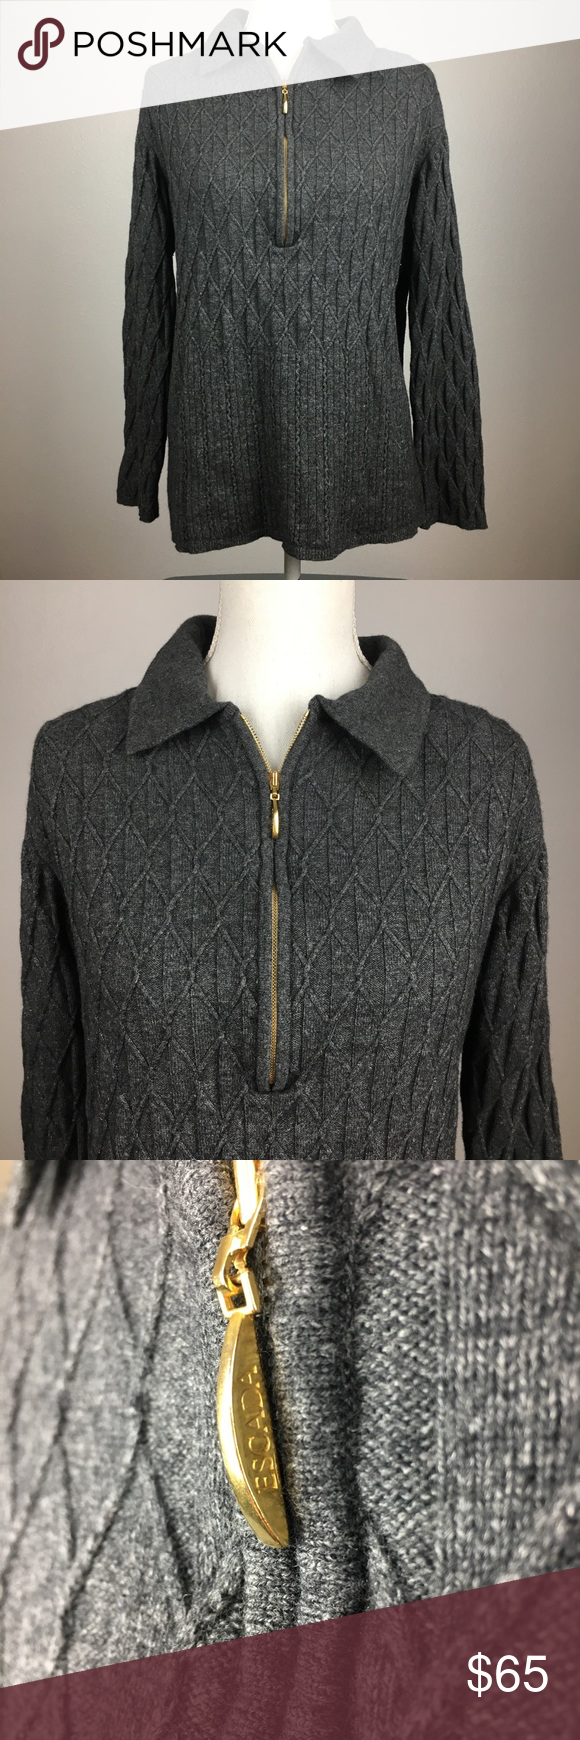 Escada Knit Collared Sweater Excellent condition Escada Knit sweater with  collar and half zip. Size 44 (large). Color  dark gray. Wool  cashmere   silk blend ... 3238593ef